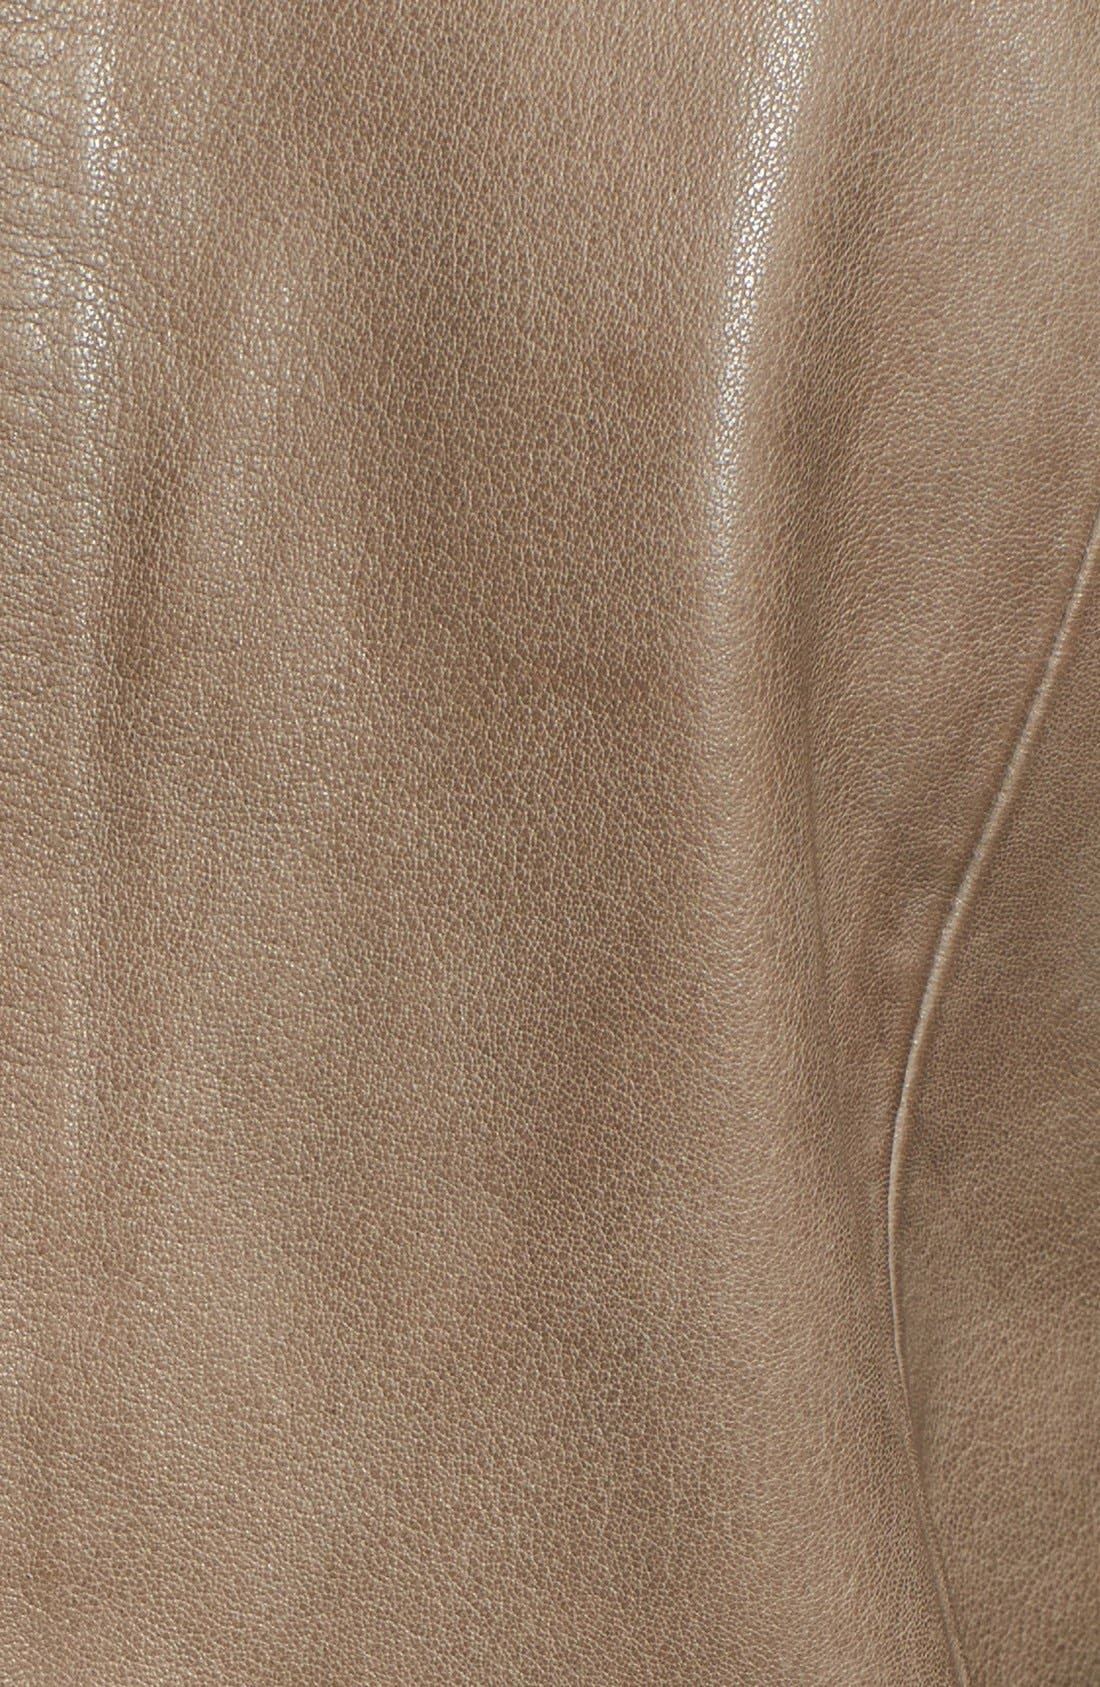 Alternate Image 3  - LaMarque 'Esther' Leather Jacket with Removable Mesh Sleeves